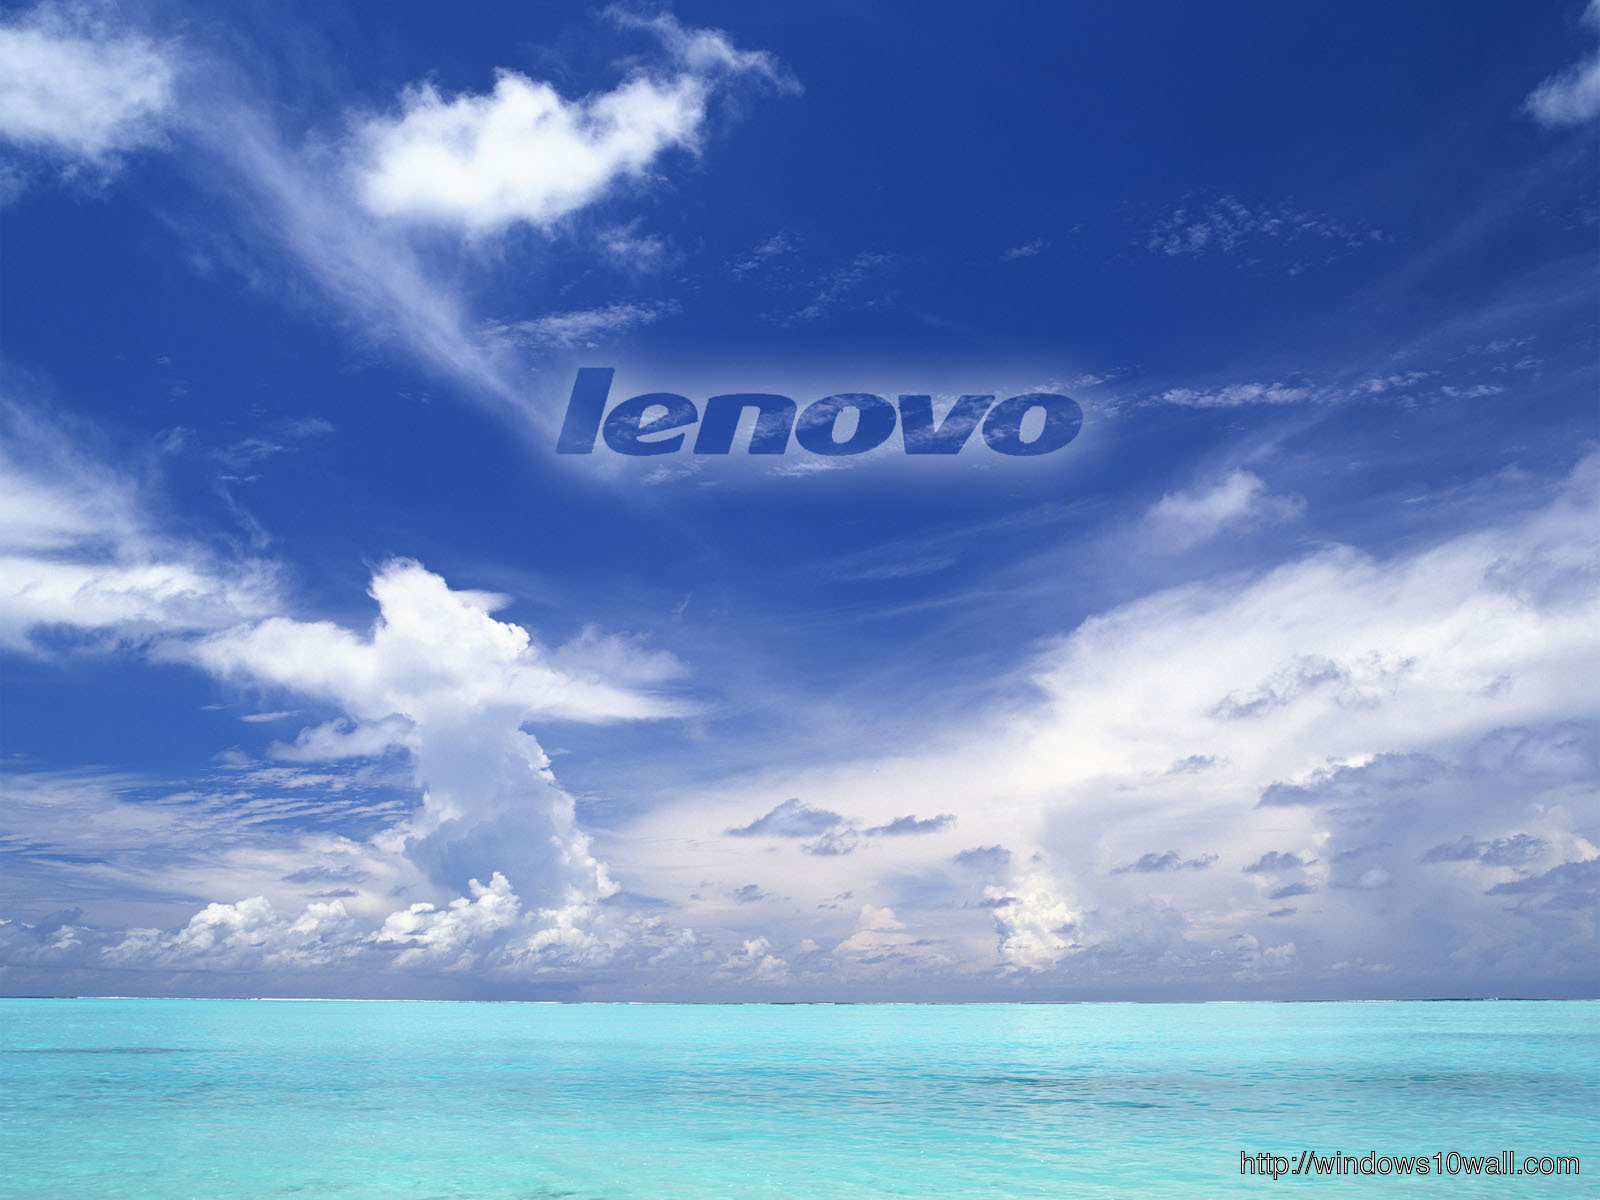 Technology Lenovo HD Background Wallpaper